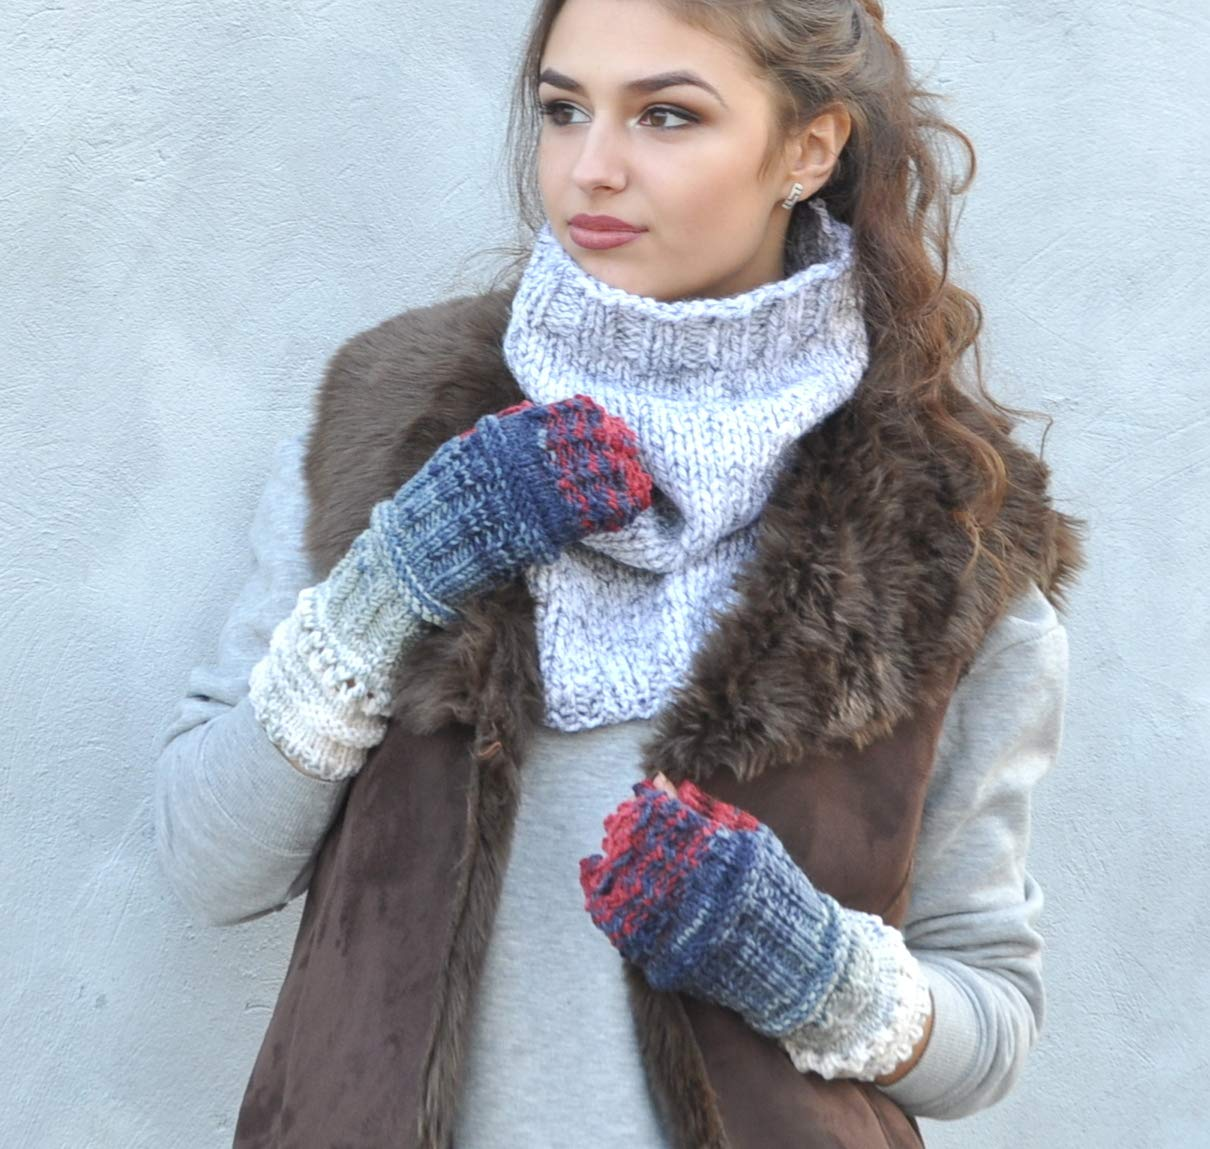 B01M031F9V Long Cable Mittens, Fingerless Gloves, Knitted Mittens Thumb Hole Gloves, Winter Mittens, Sweet Girls Women Mittens, Hand Wrist Winter Warmer Knitted in blue jeans tones 7145EqjDOnL